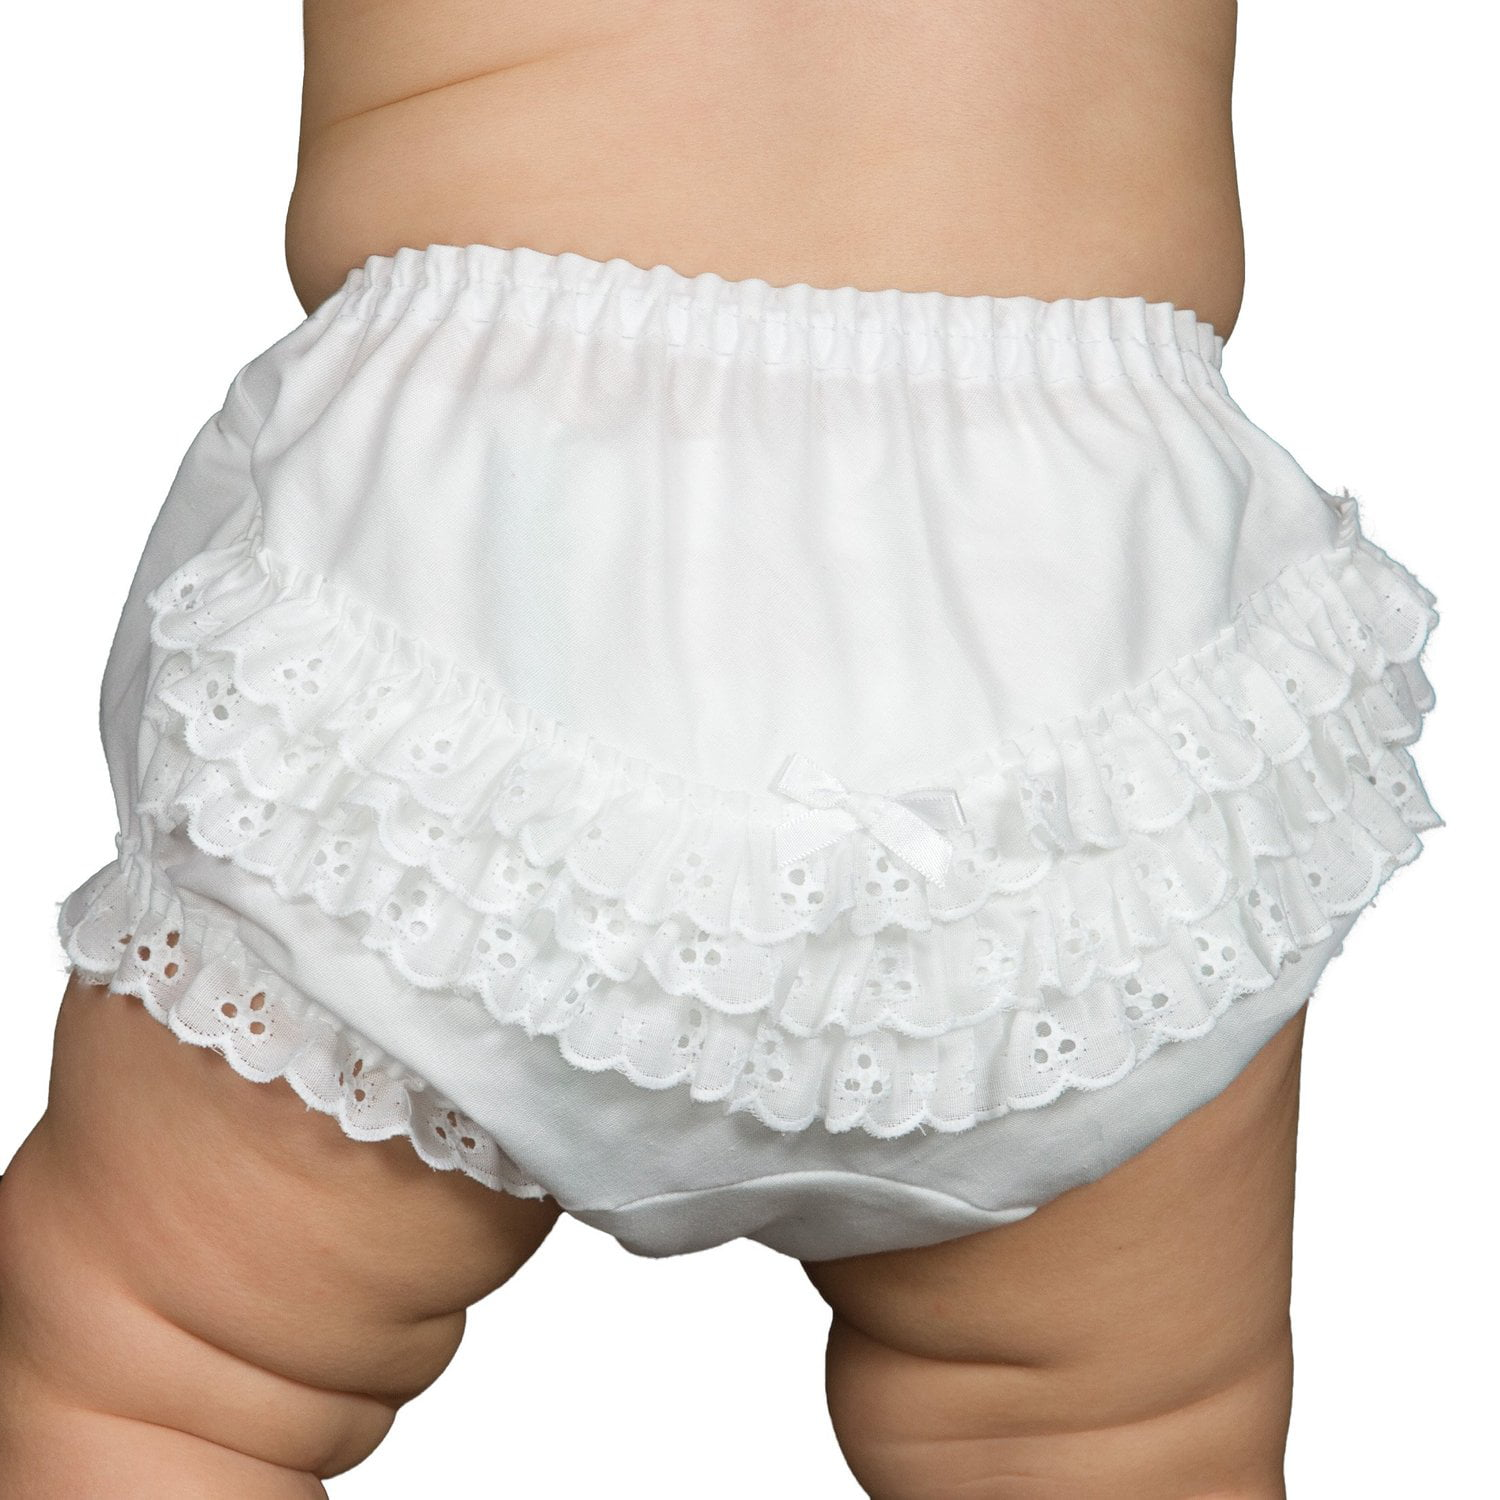 Carriage Boutique Baby Girl Knitted Panty Diaper Covers White Bloomers with Ruffles